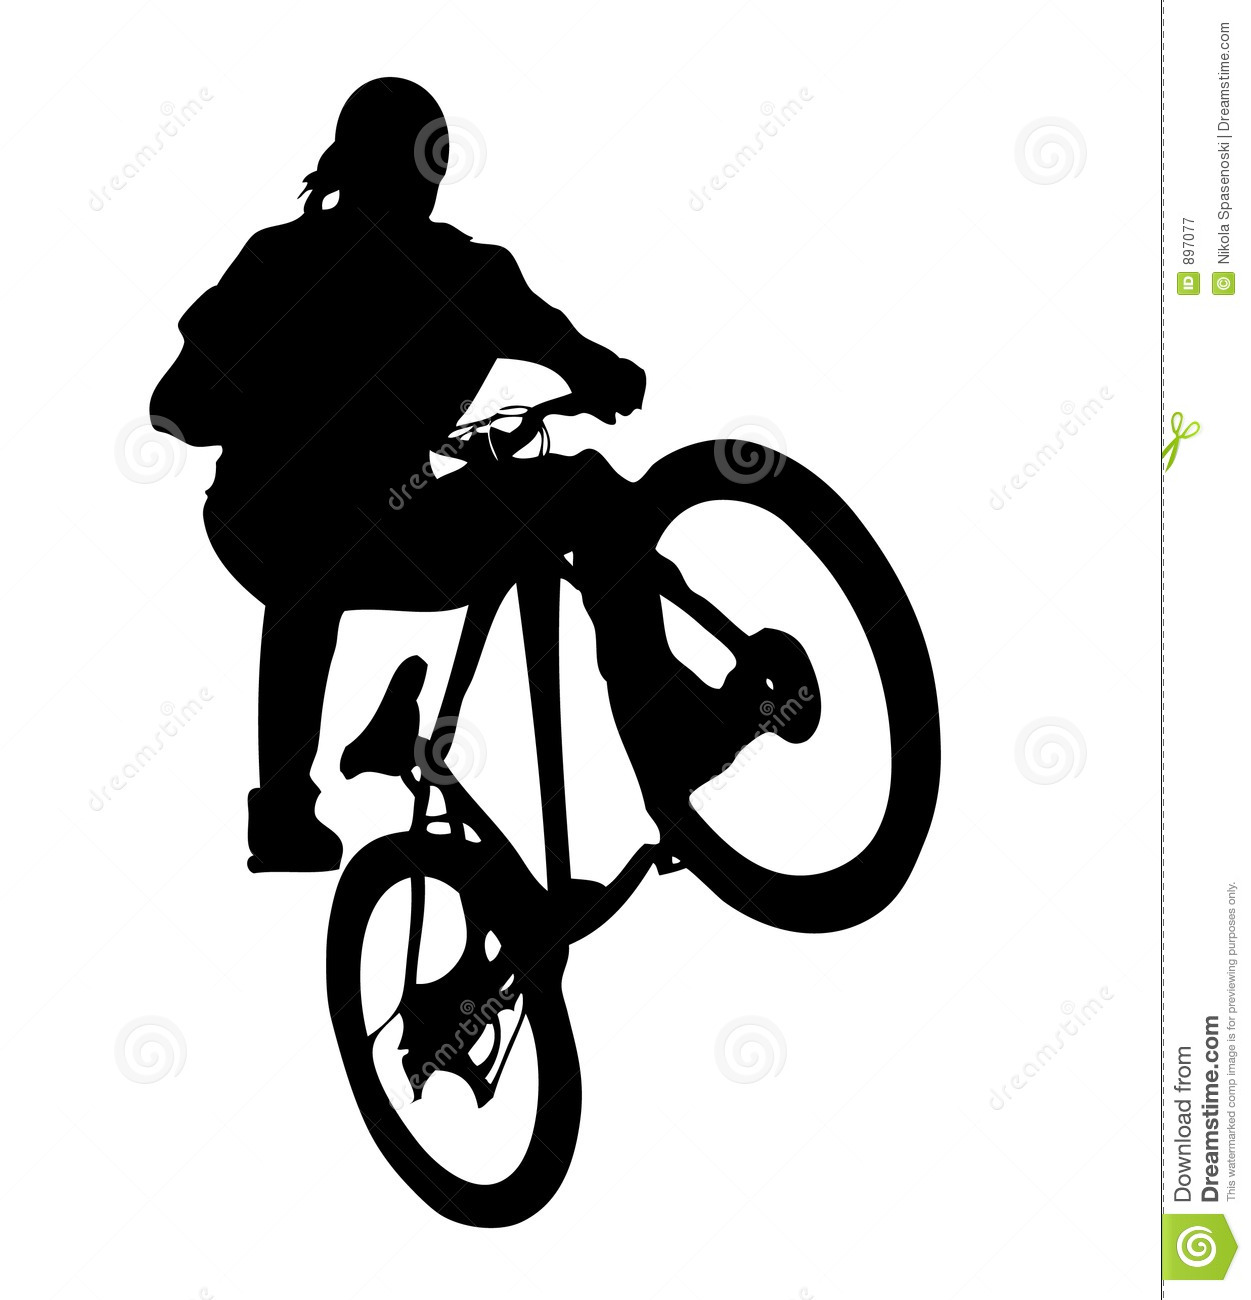 Mountain bike riding clipart.